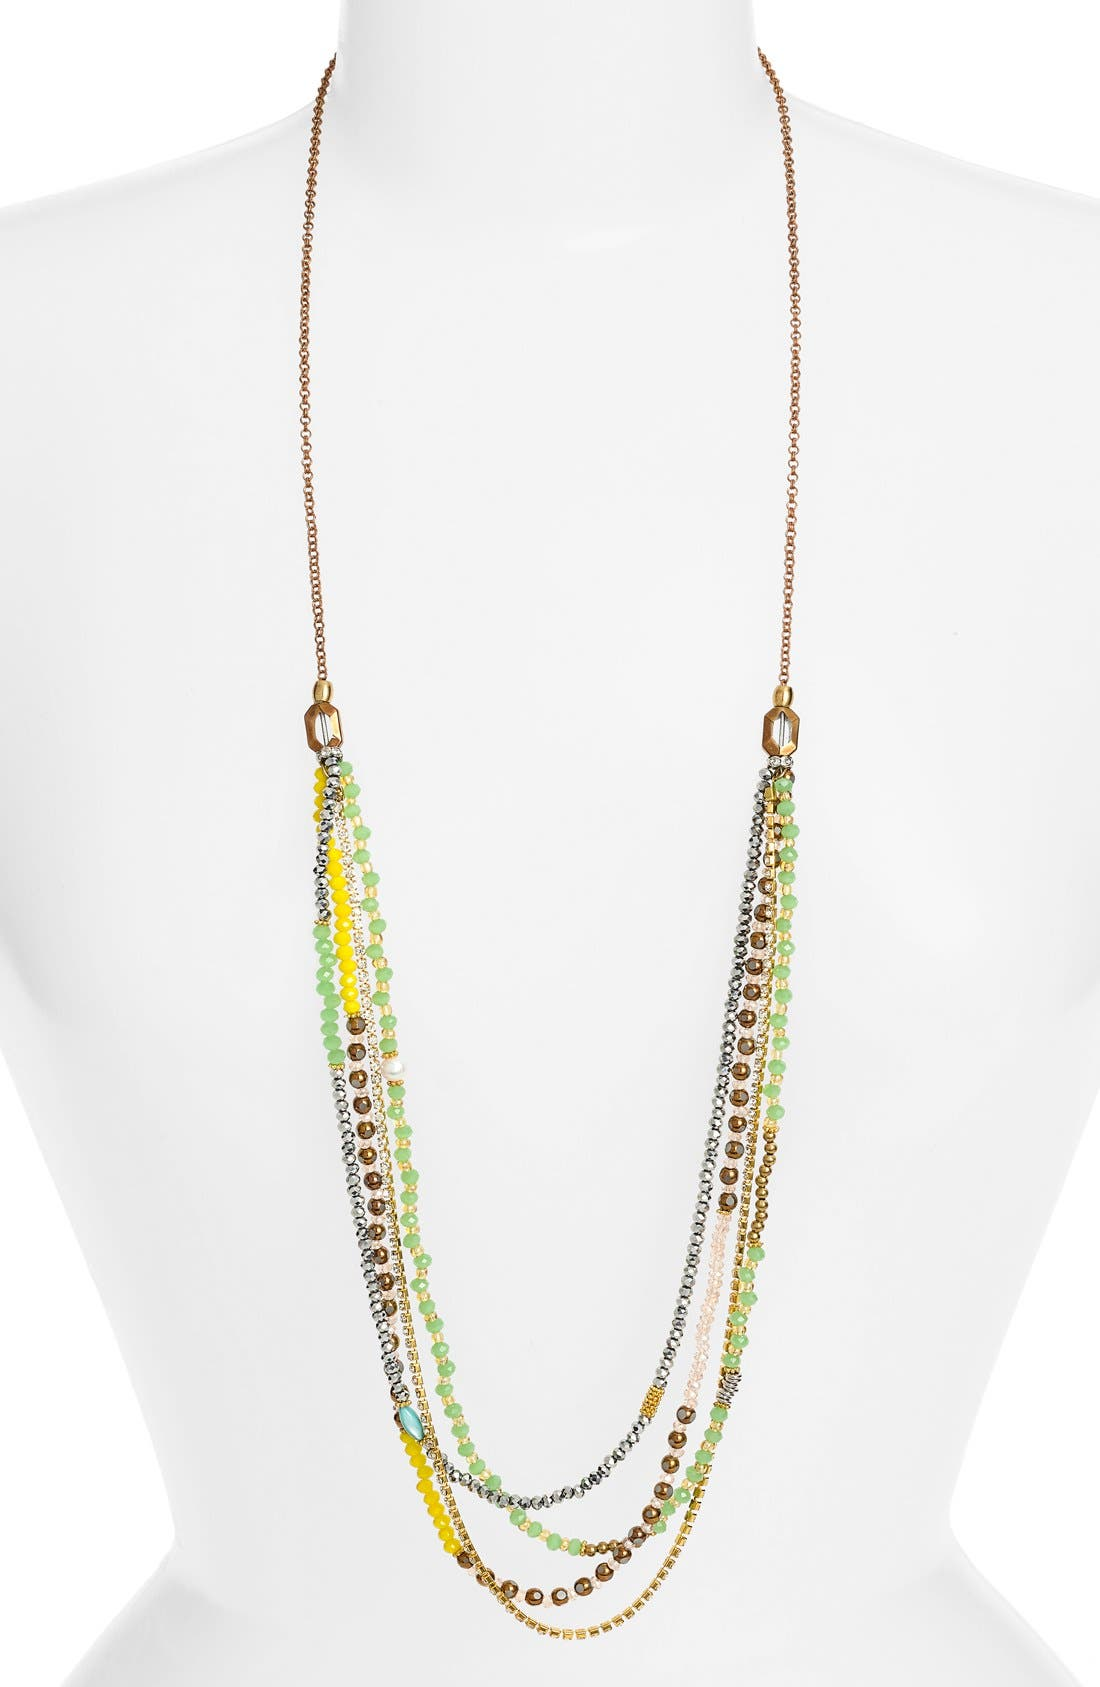 ELISE M. 'Delhine' Layered Strand Necklace